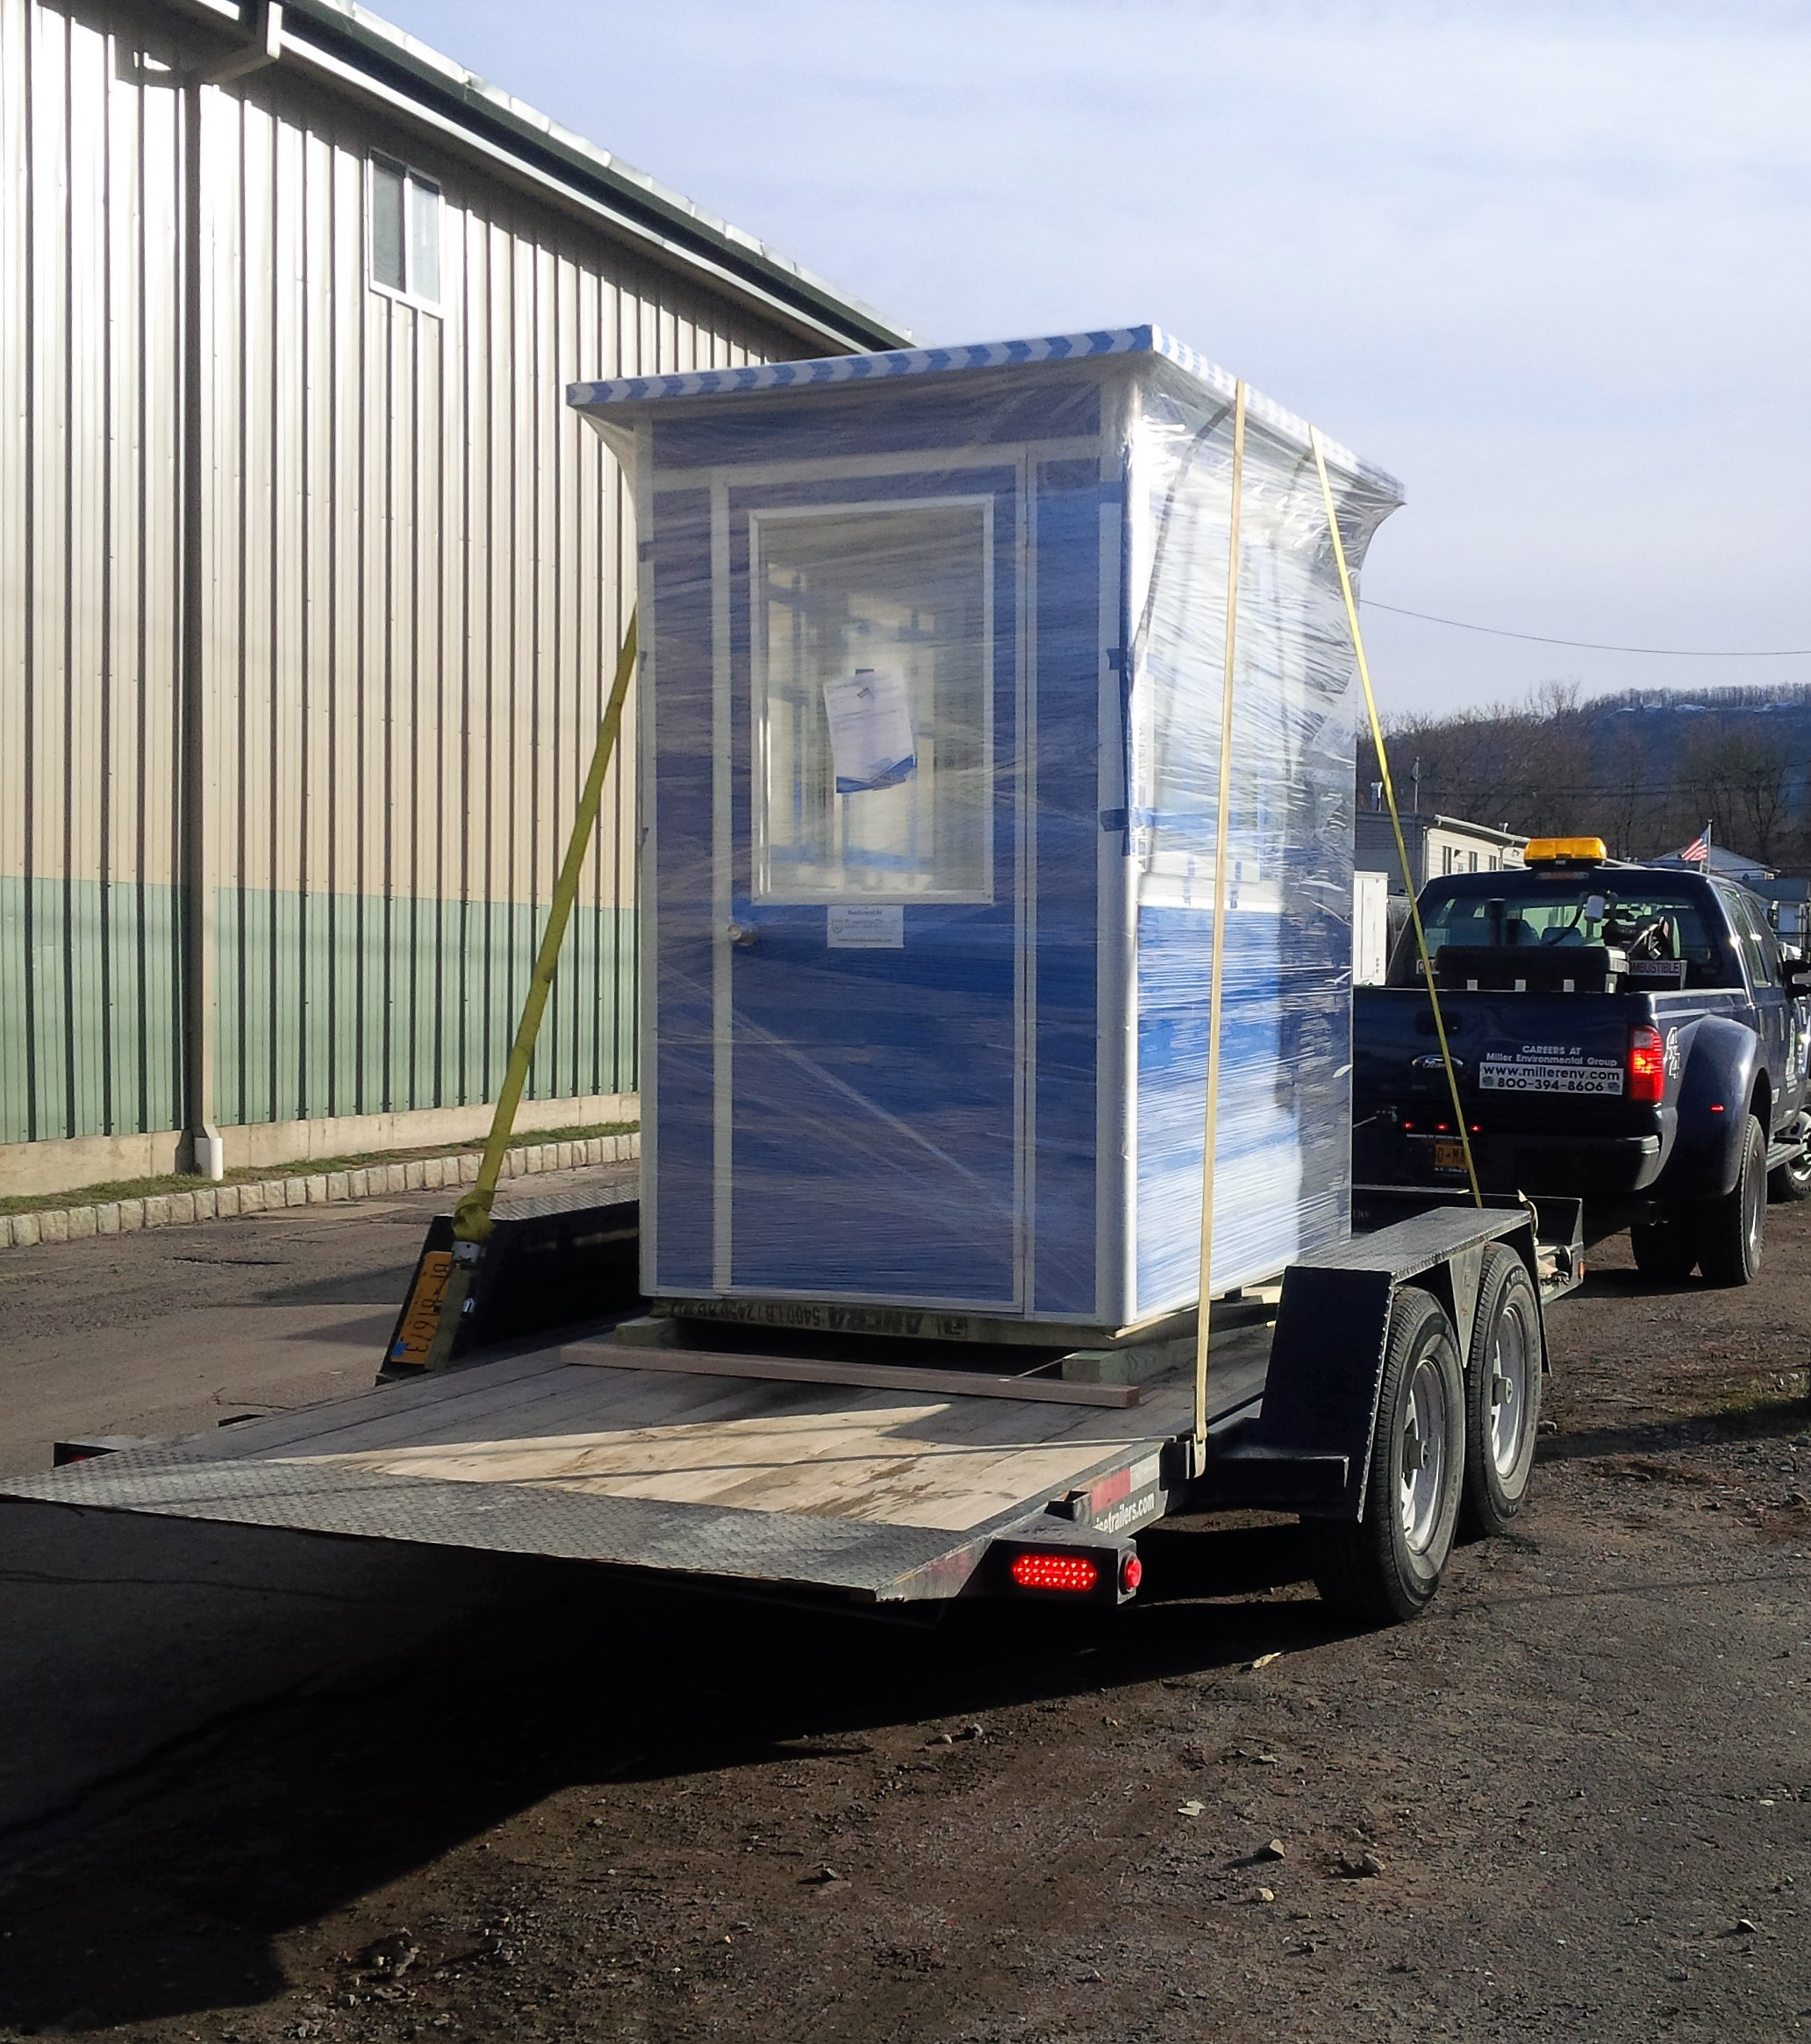 4x6 Security Guard Booth ready for Delivery in Washington, DC with Swing Door